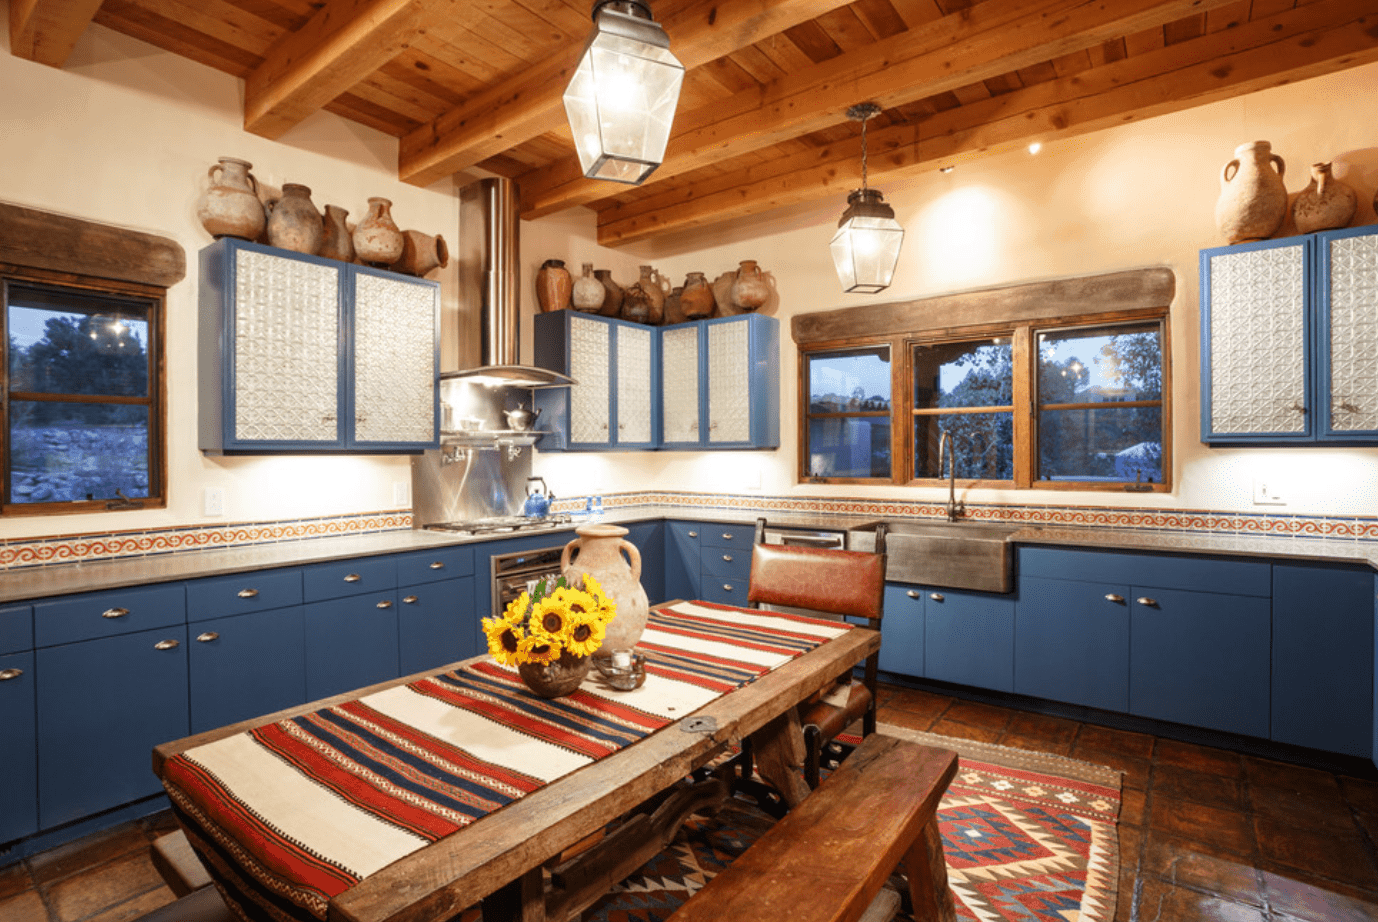 Southwestern kitchen features blue cabinetry and slate flooring. The room is decorated with rustic pottery vases and pendant lights.